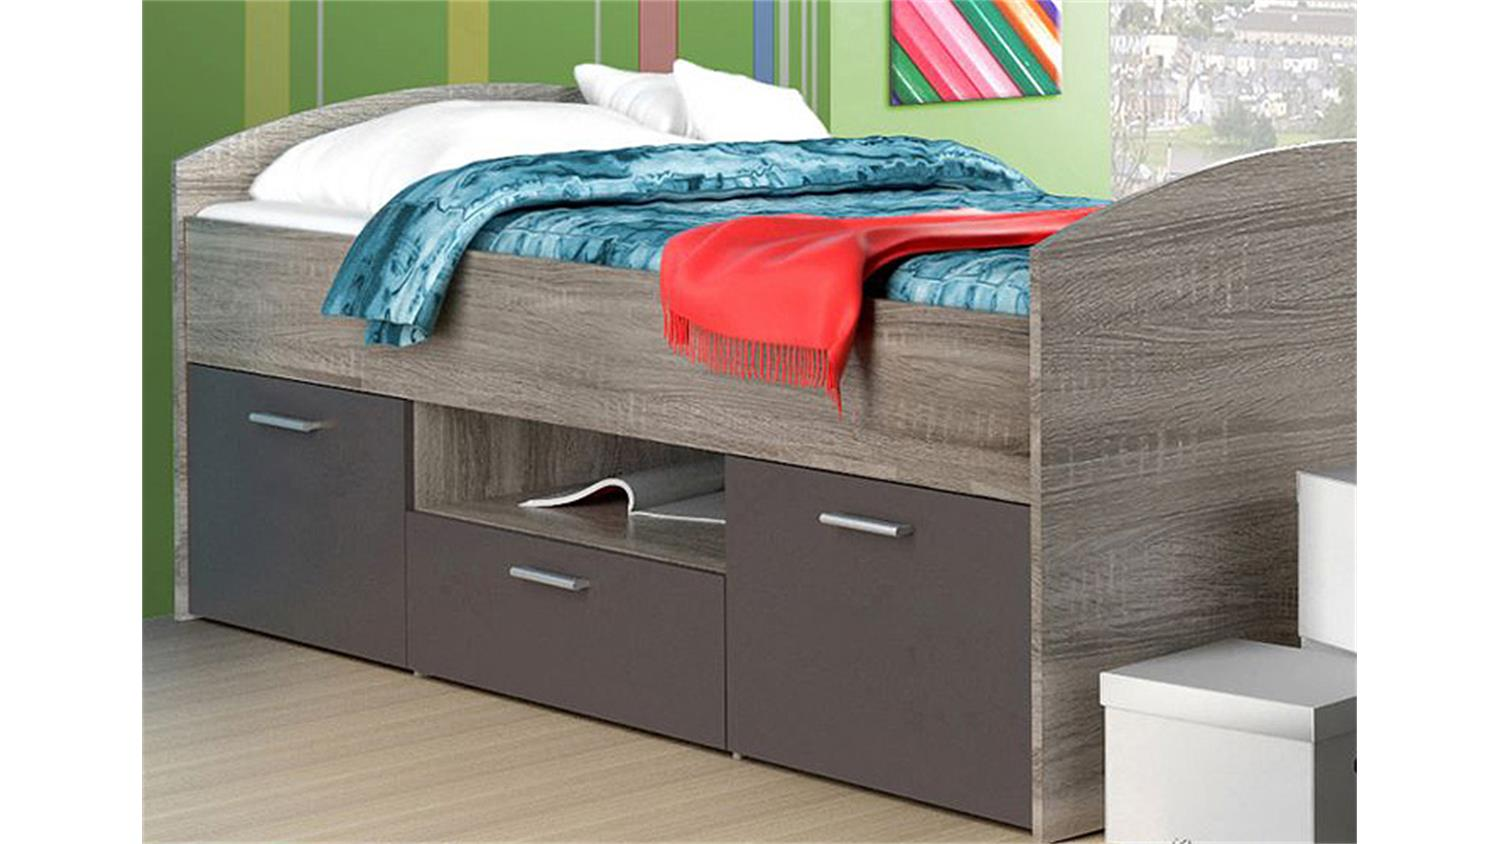 kinderzimmer in grau ideen f r babyzimmer m dchen. Black Bedroom Furniture Sets. Home Design Ideas